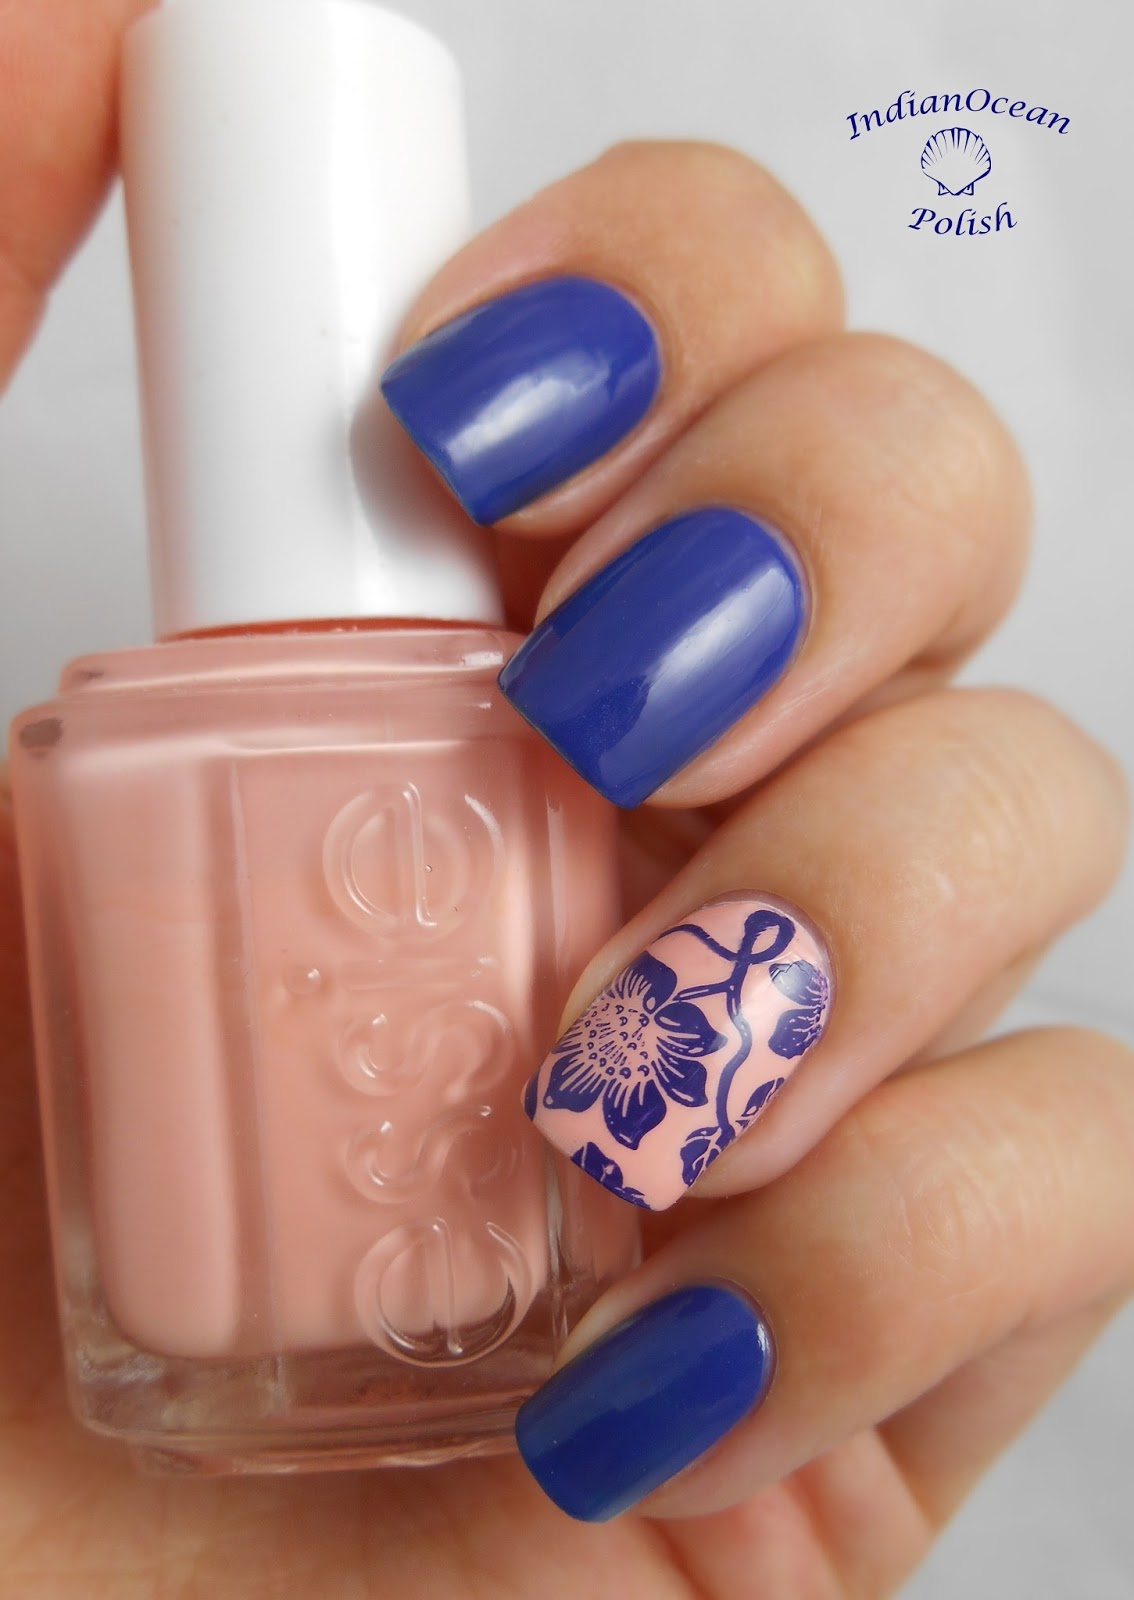 Indian Ocean Polish Everything I Know About Nail Stamping Updated